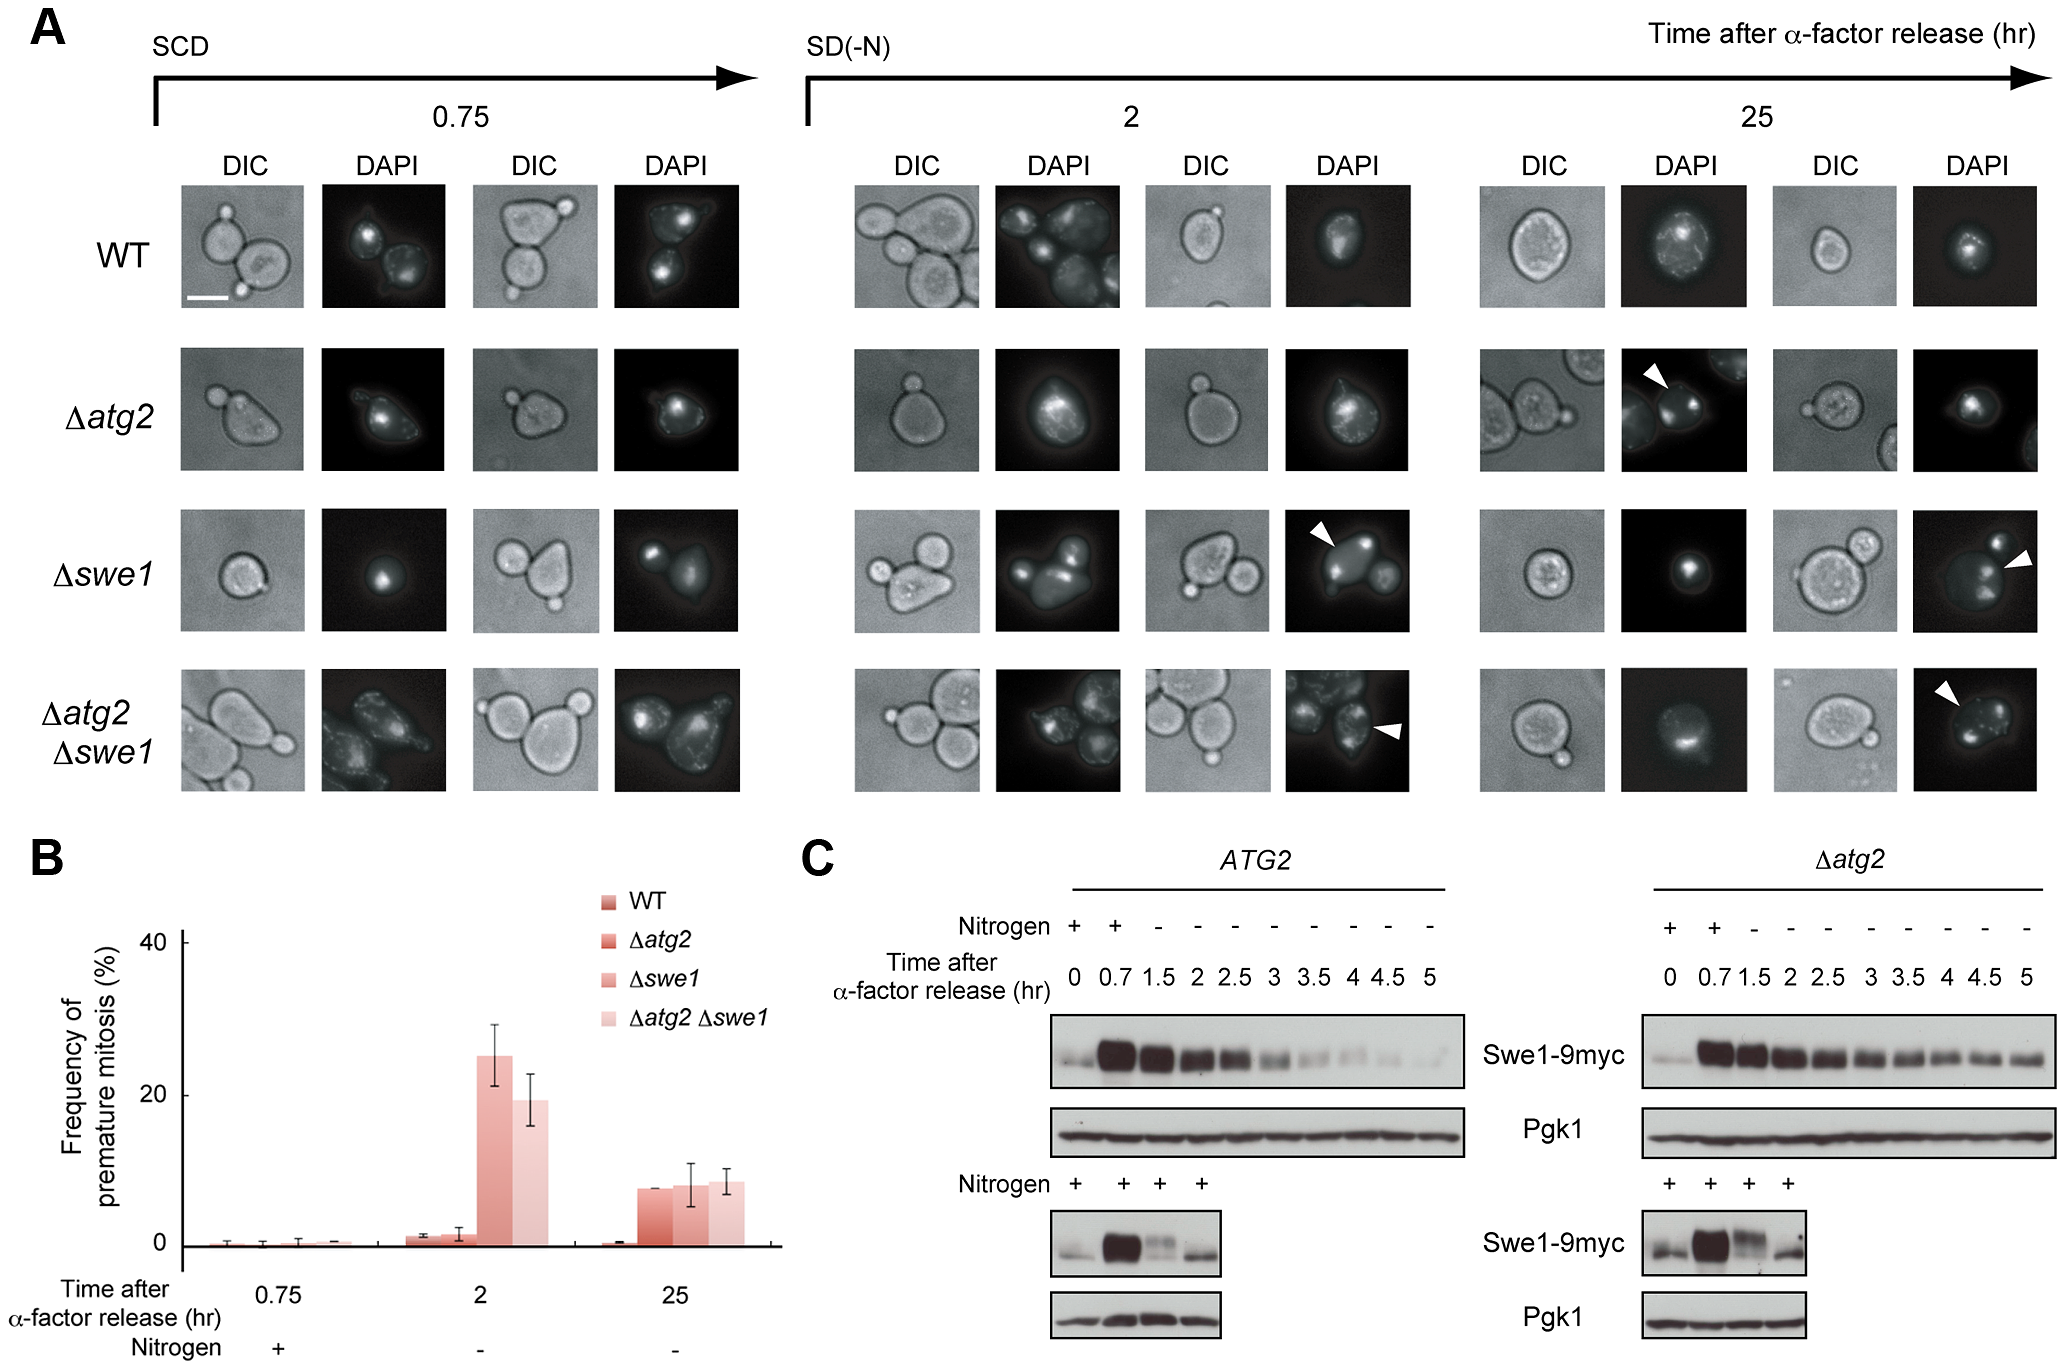 Autophagy is important for normal cell division under nutrient starvation conditions.